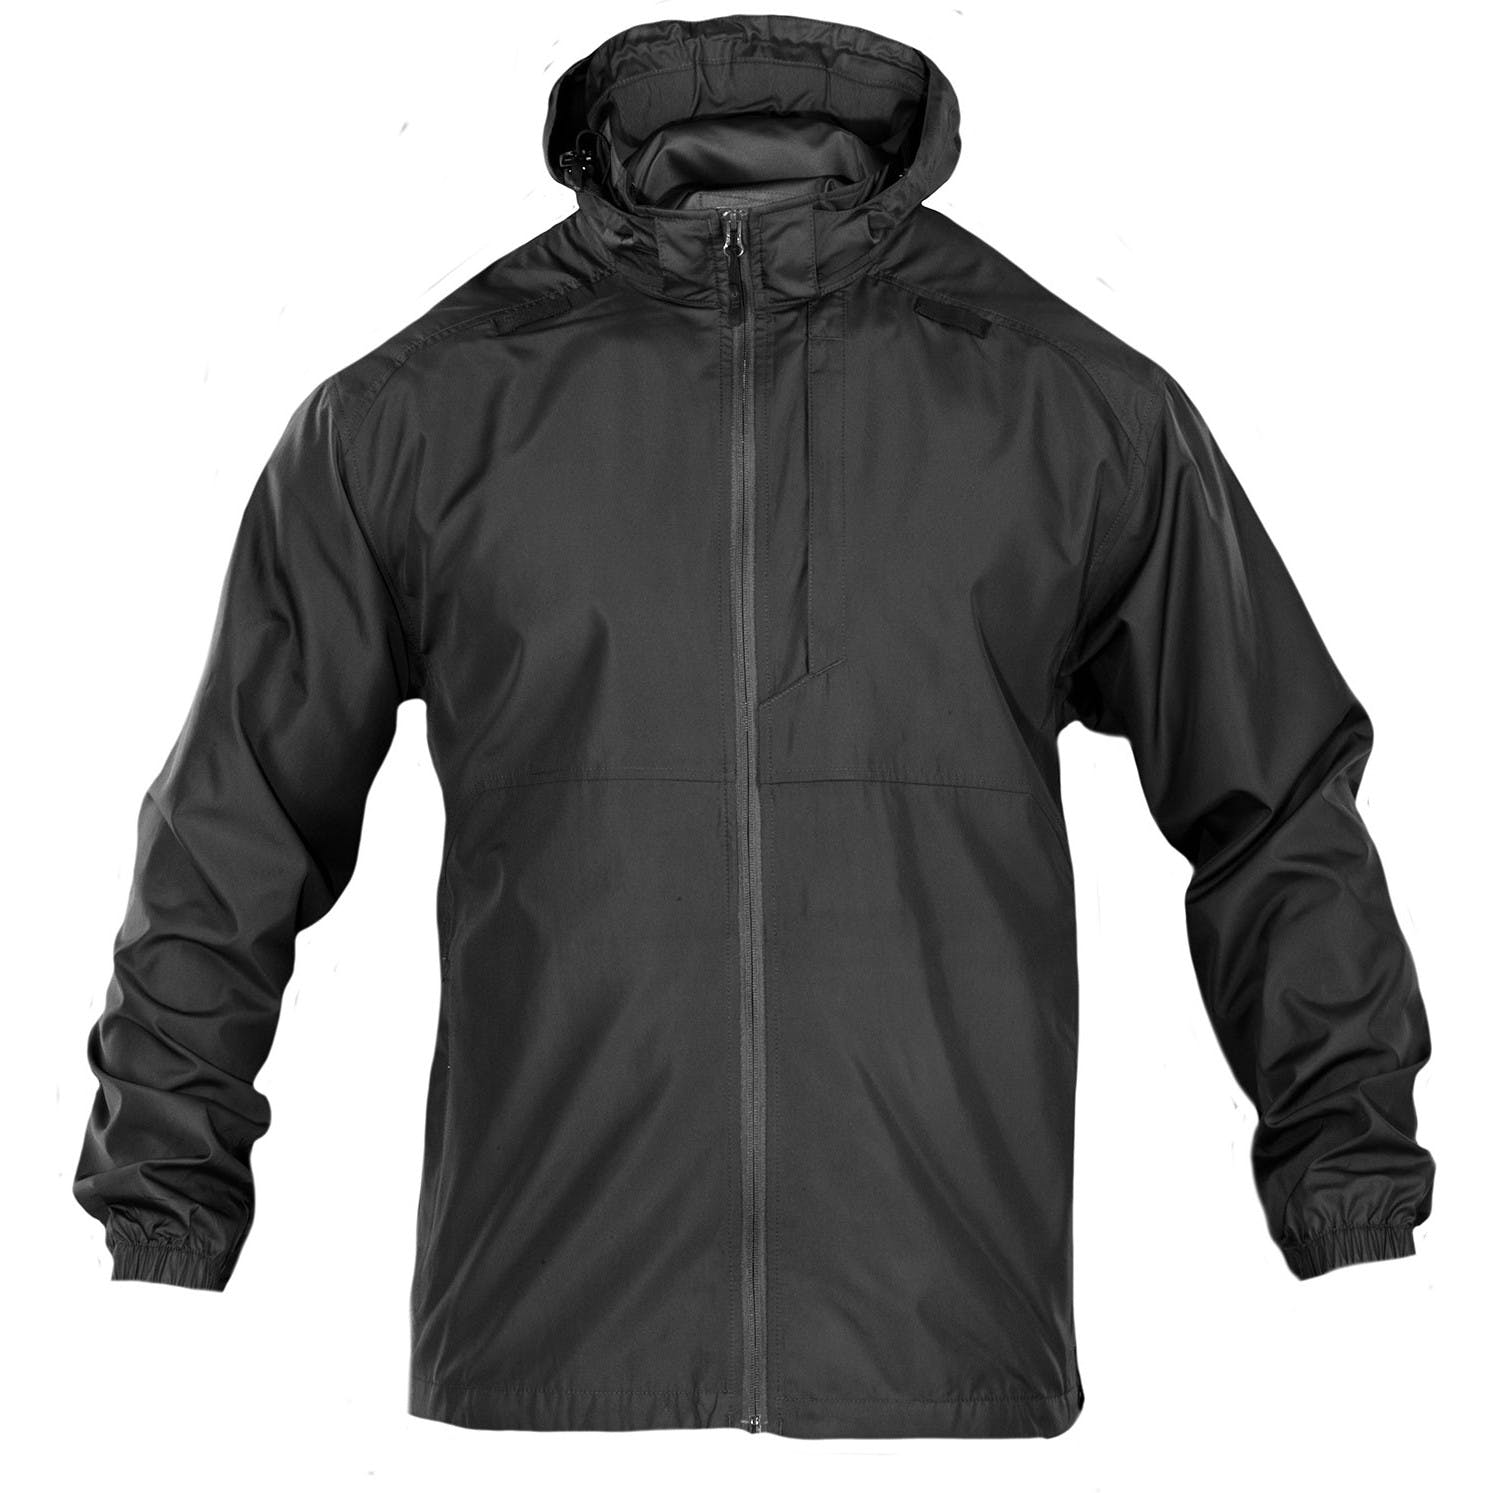 5 11 Tactical Packable Operator Jacket From Nightgear Uk